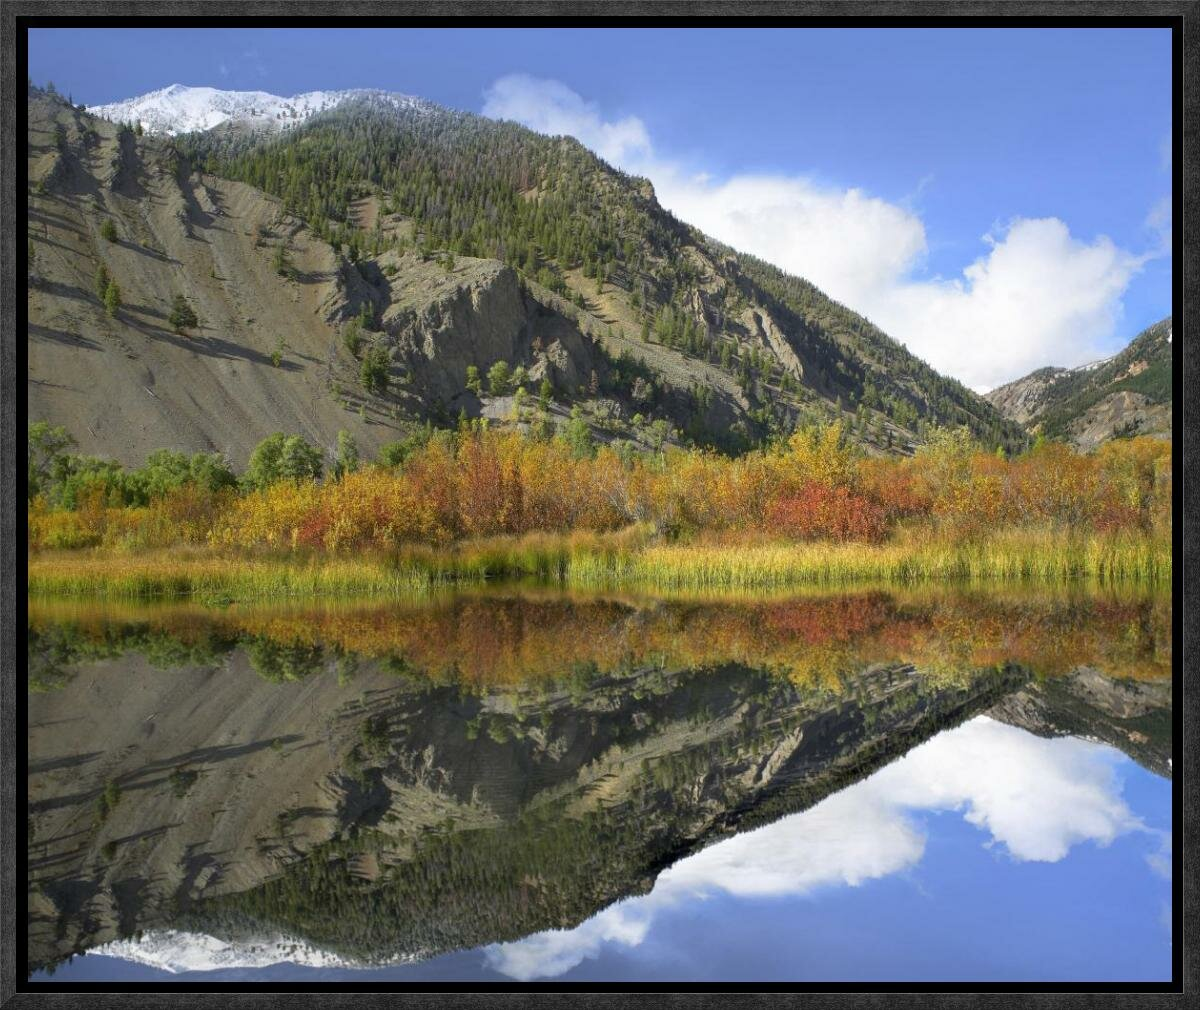 Idaho Canvas Picture Art Boulder Mountains Reflections in Beaver Pond